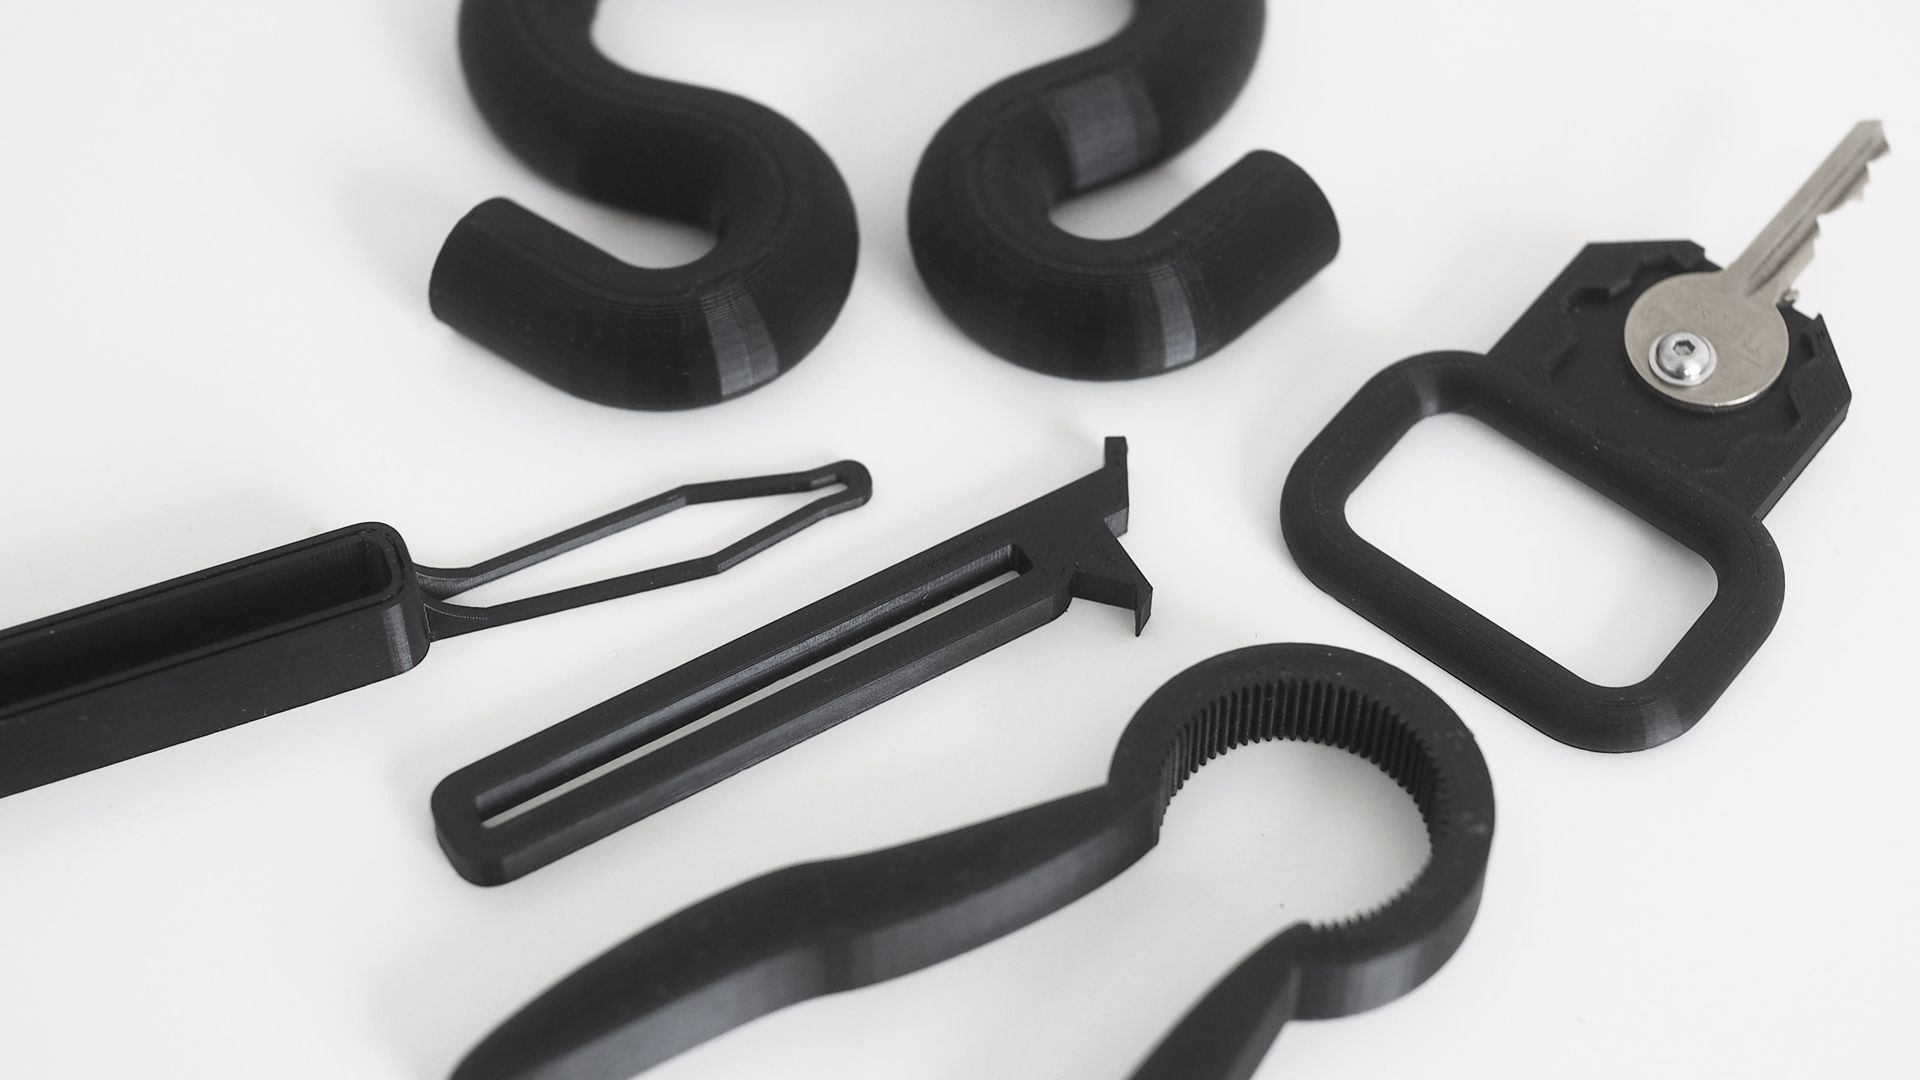 3d printed assistive devices